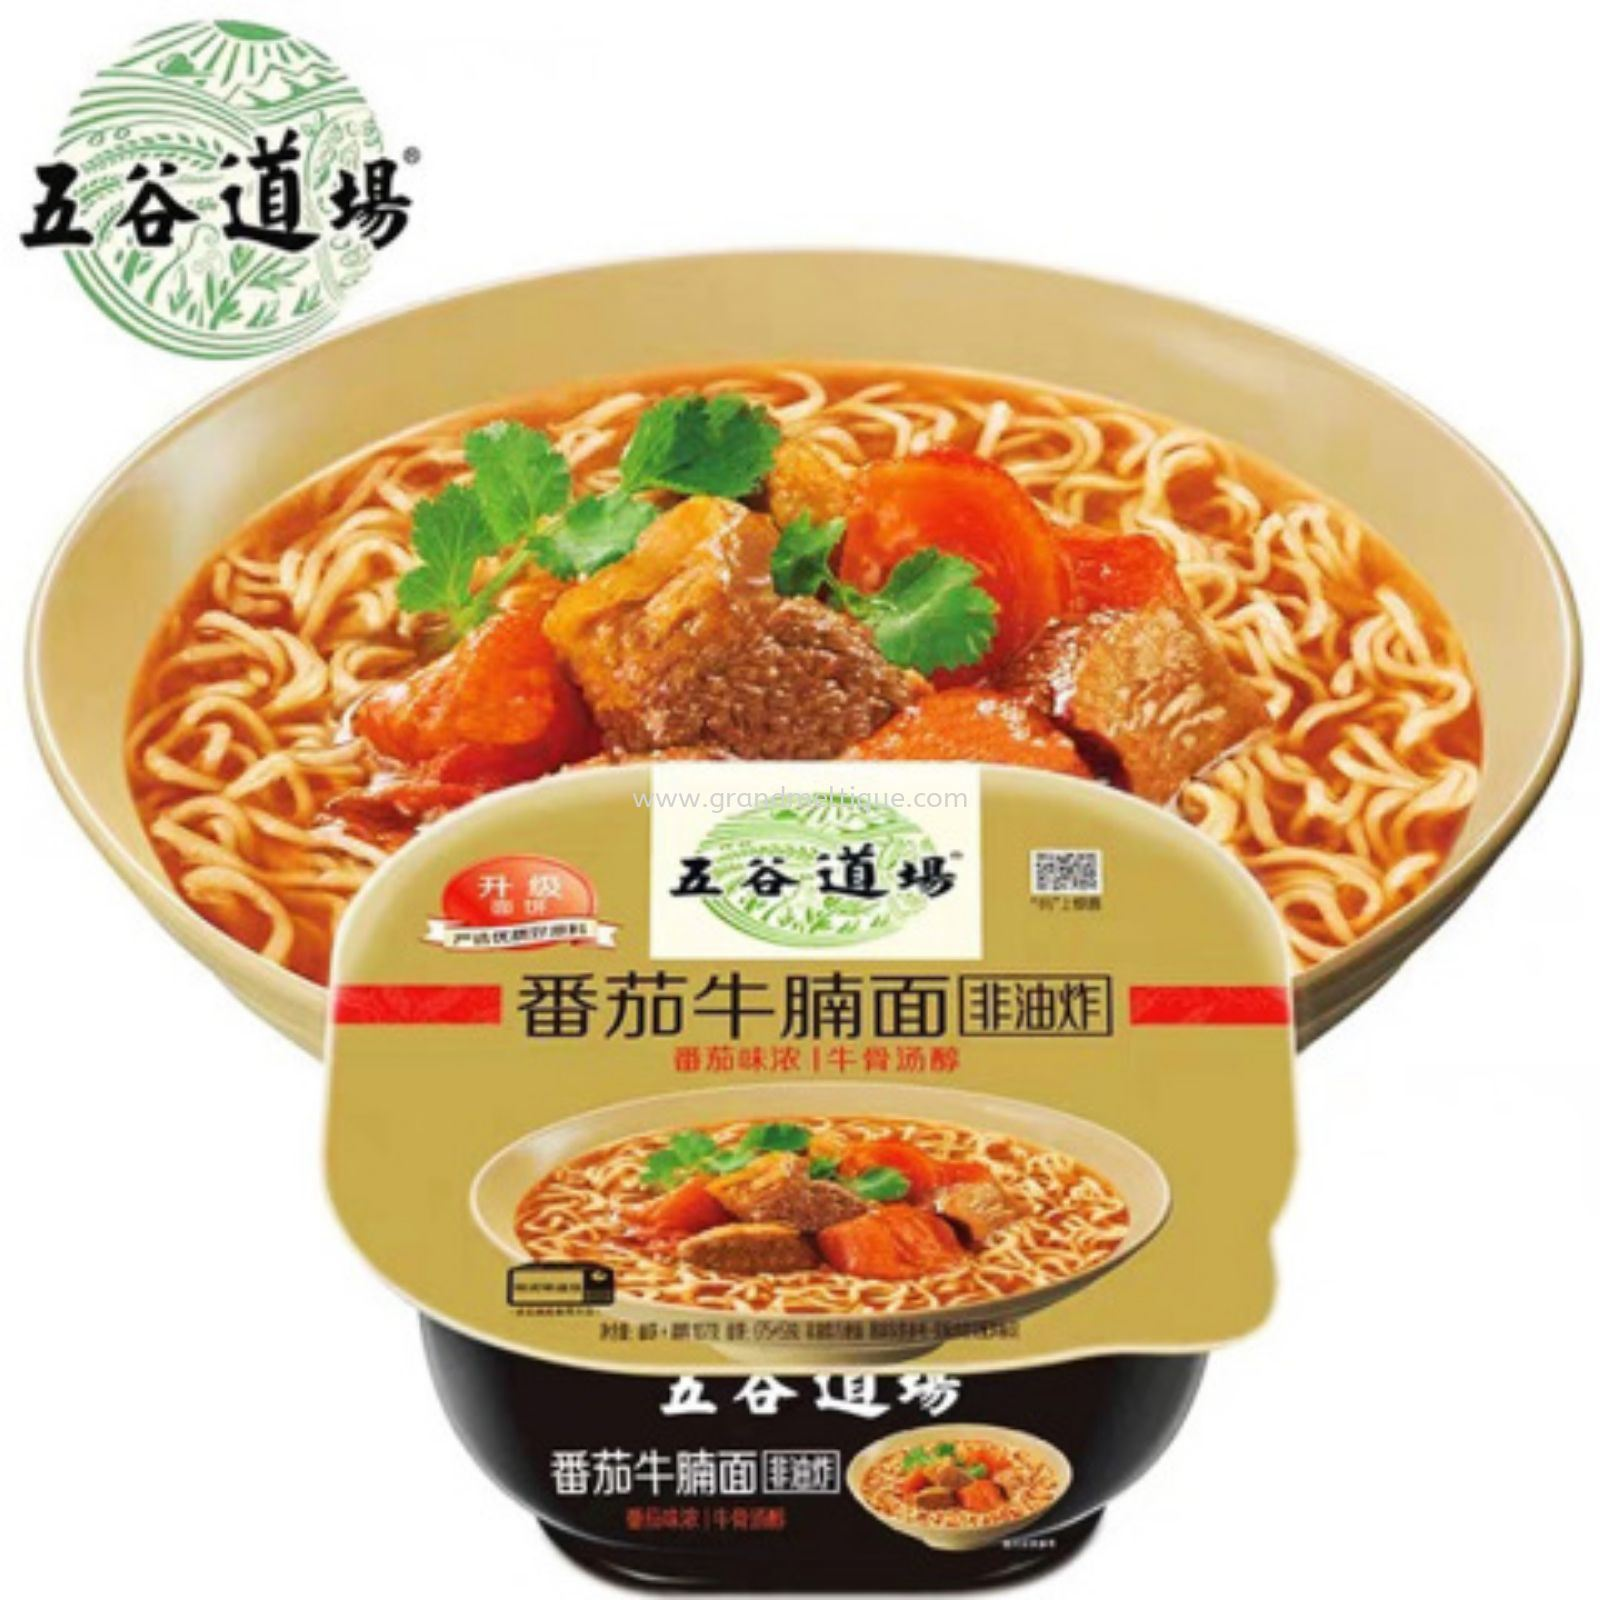 WUGUDAOCAN TOMATO BEEF TRIPE FLVR NOODLE